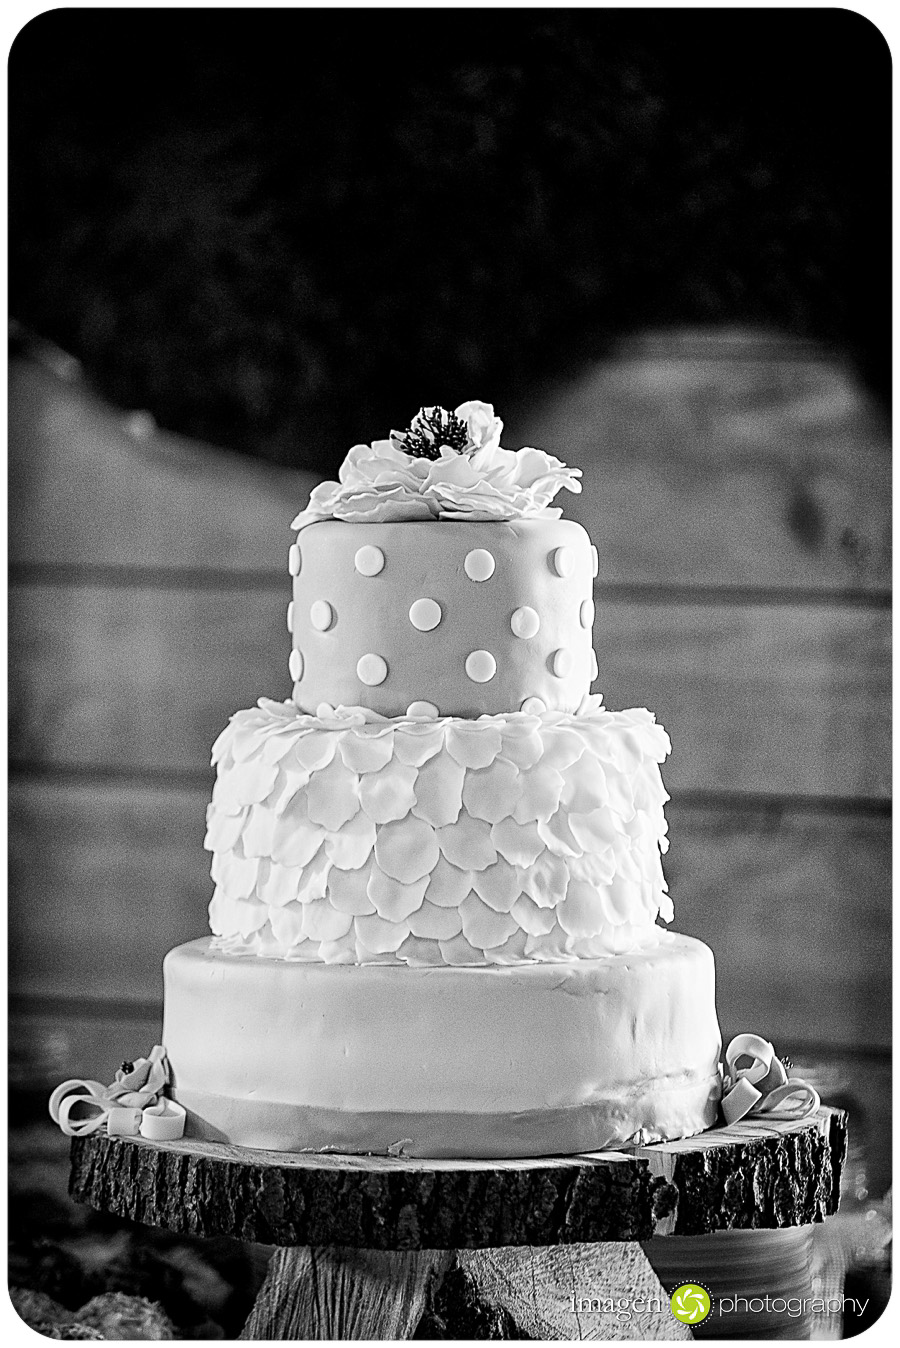 Red Run Bison Farm Wedding Marshallville Ohio, Wedding Photography, Wedding Cake